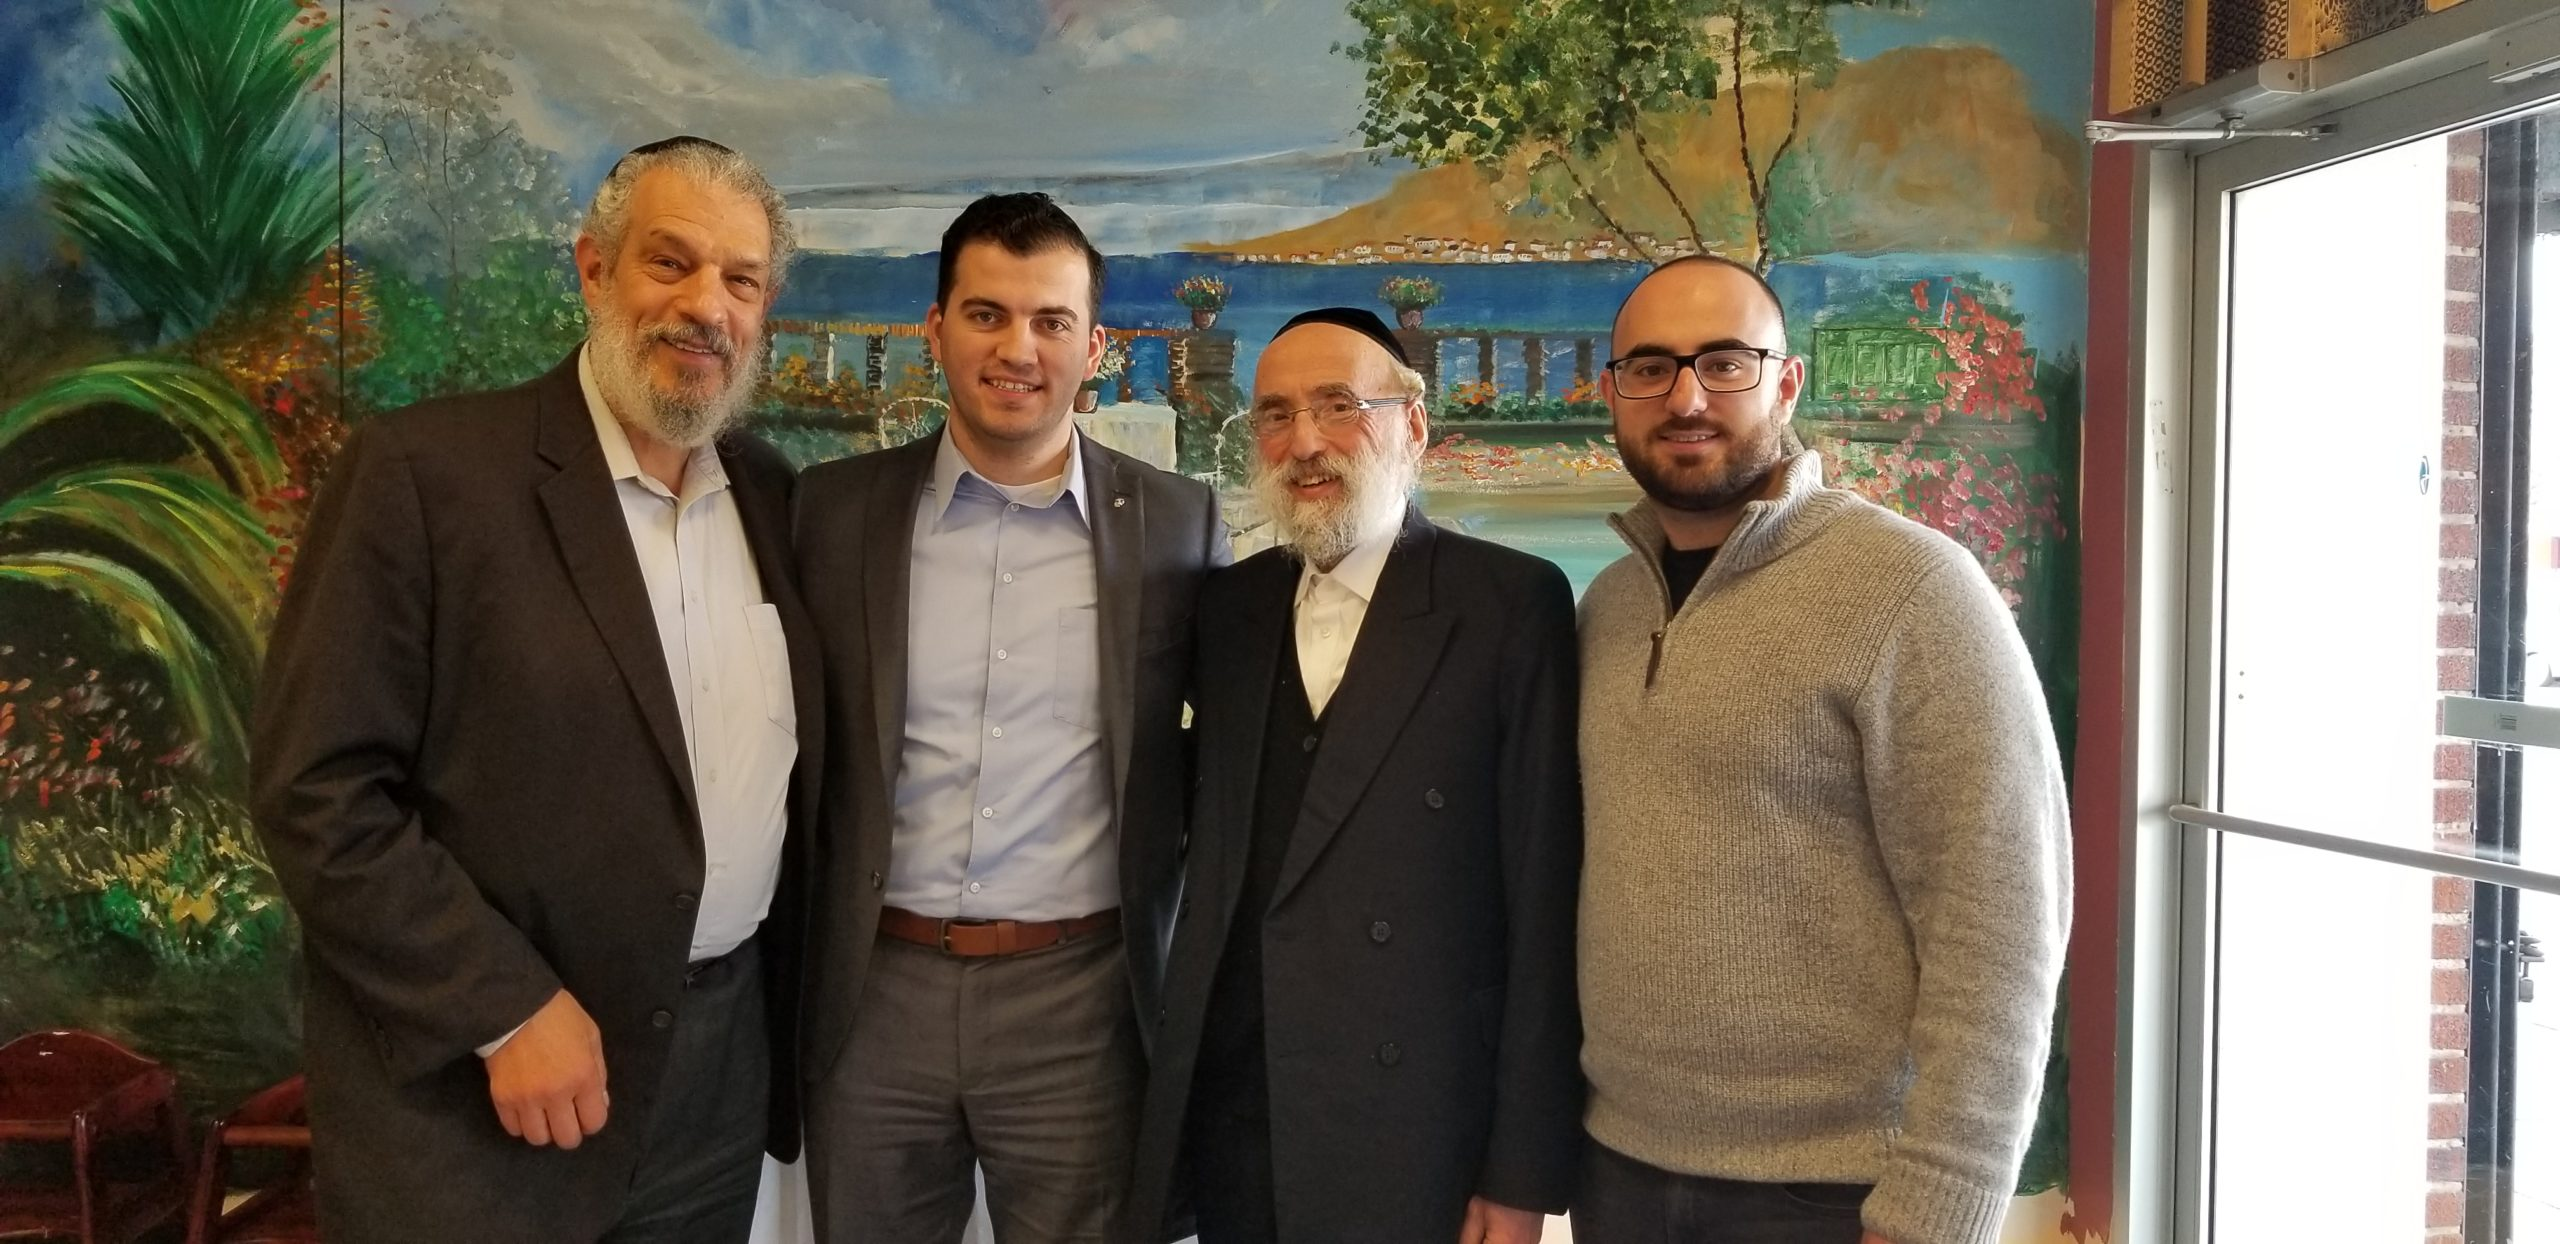 Assembly Candidate Marko Kepi Receives Rabbinical & Civil Endorsement